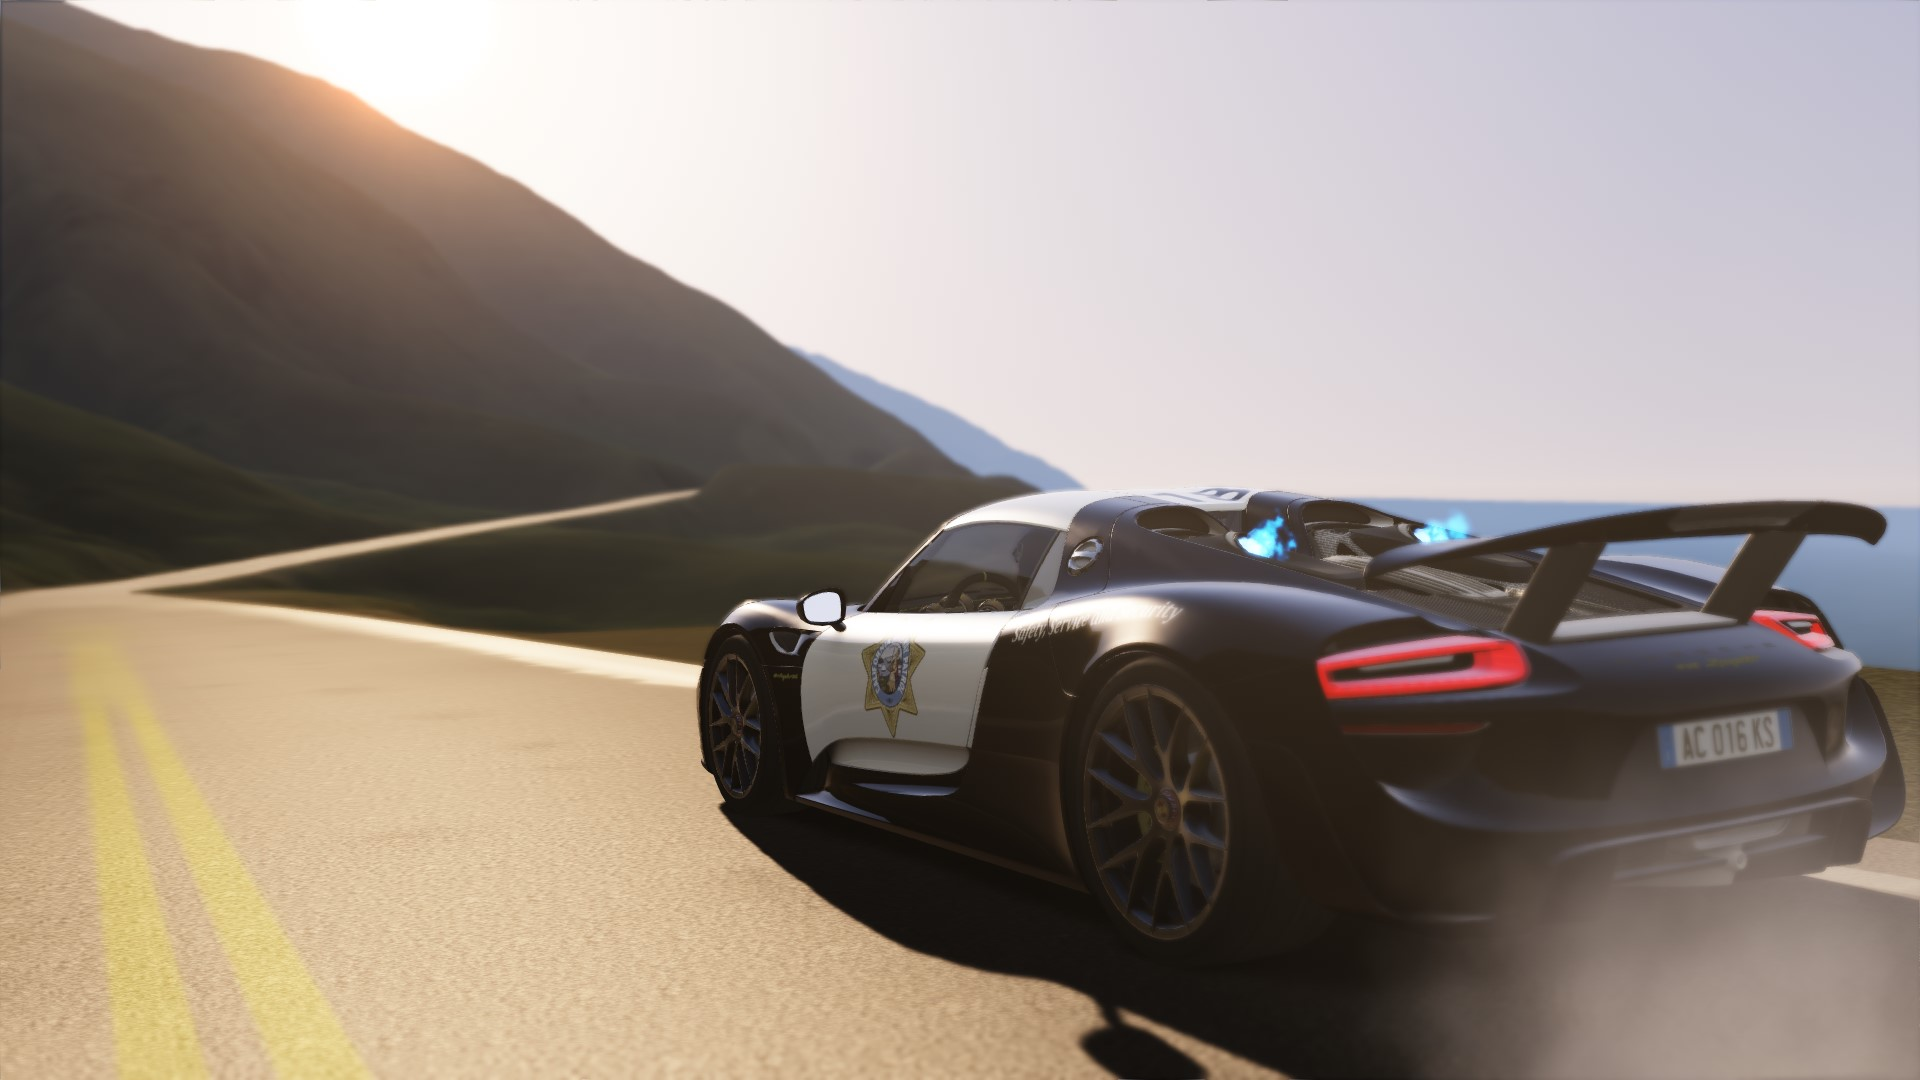 Screenshot_ks_porsche_918_spyder_pacific_coast-5.jpg